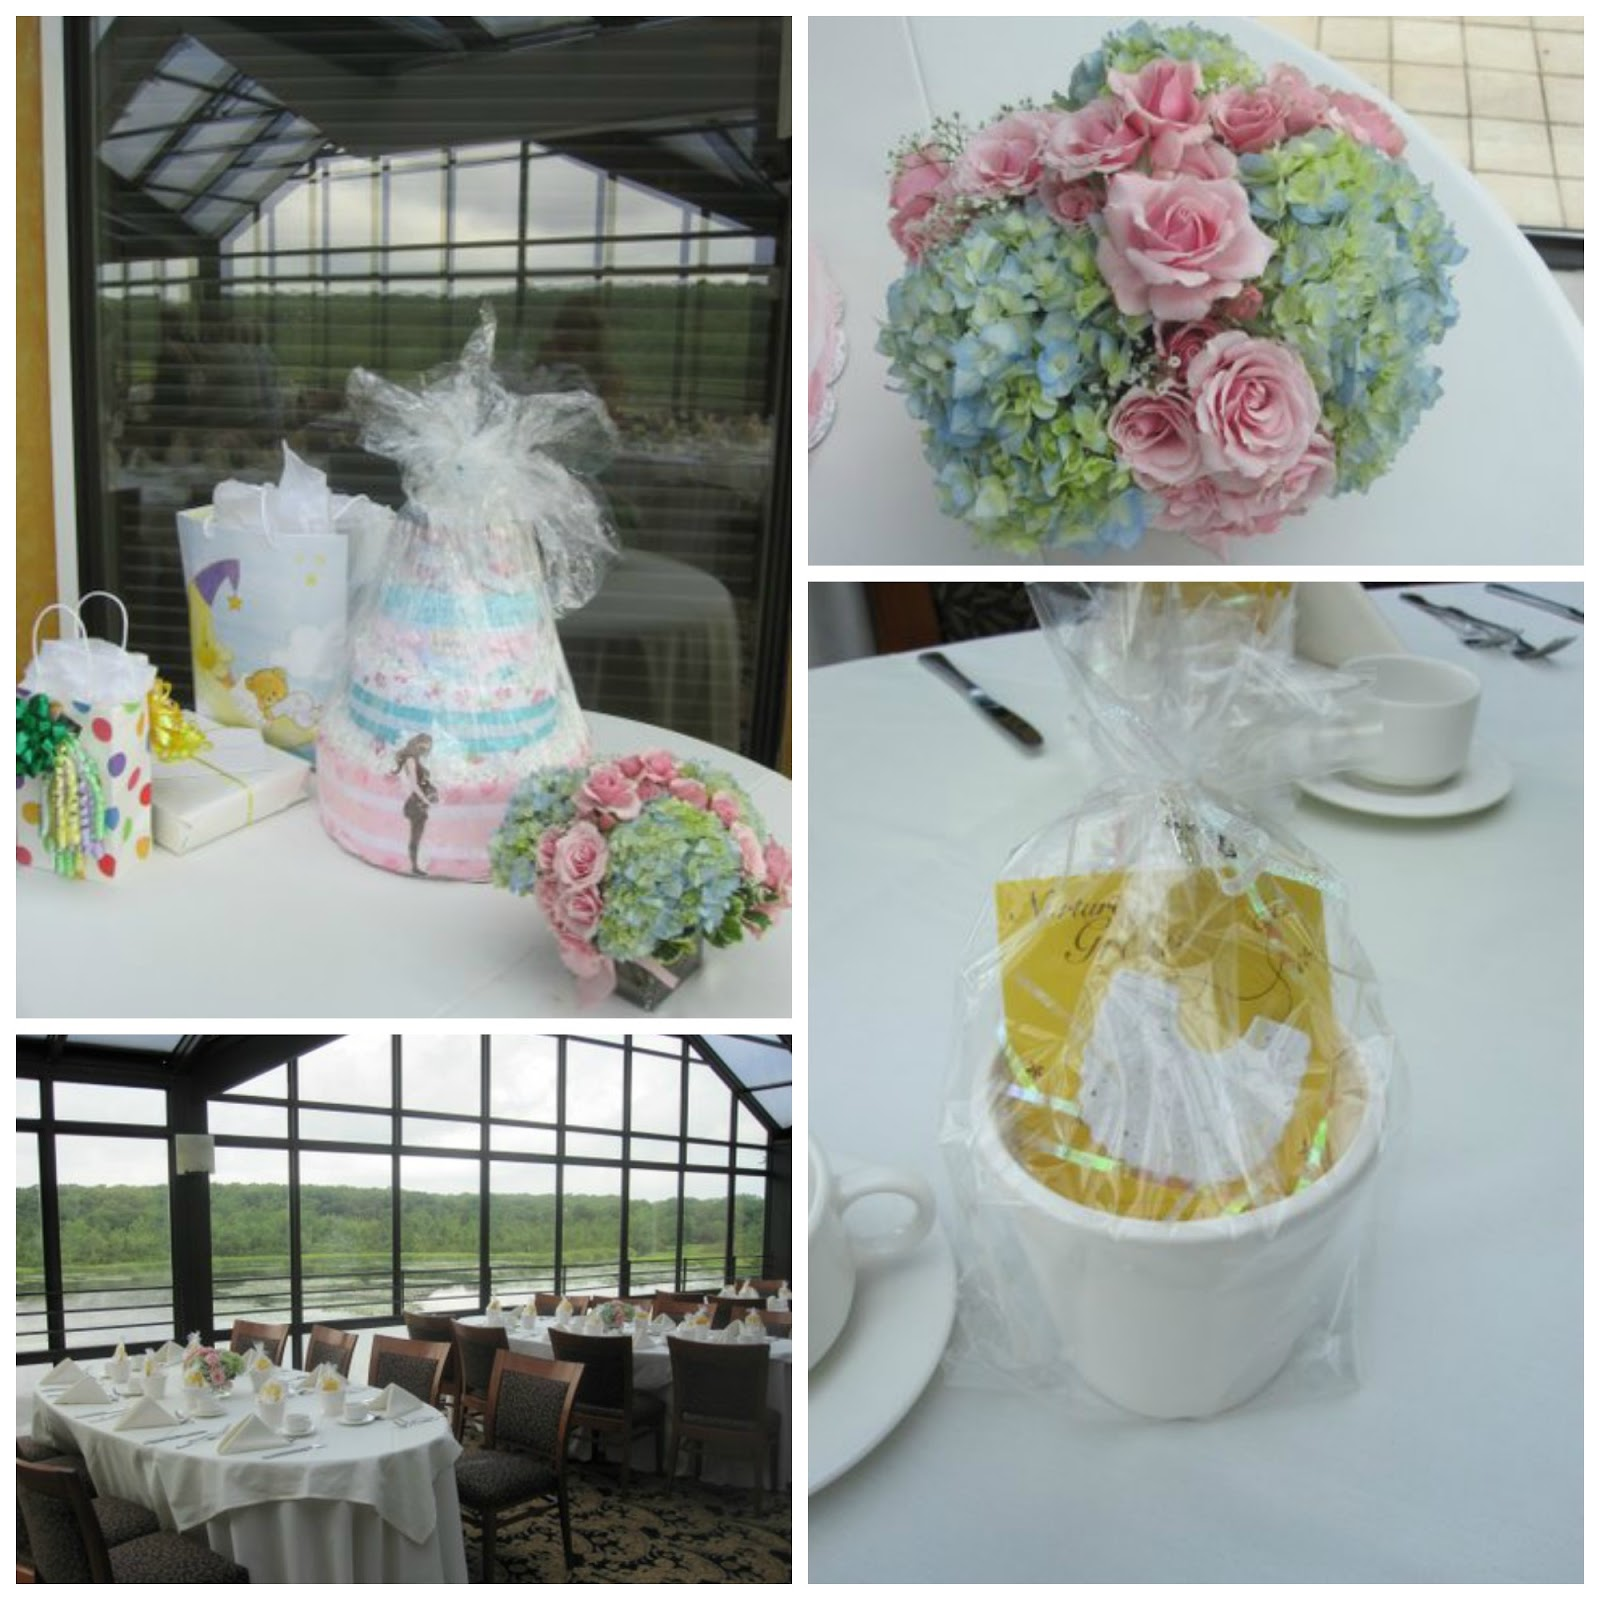 of things including helping to plan events such as a baby shower